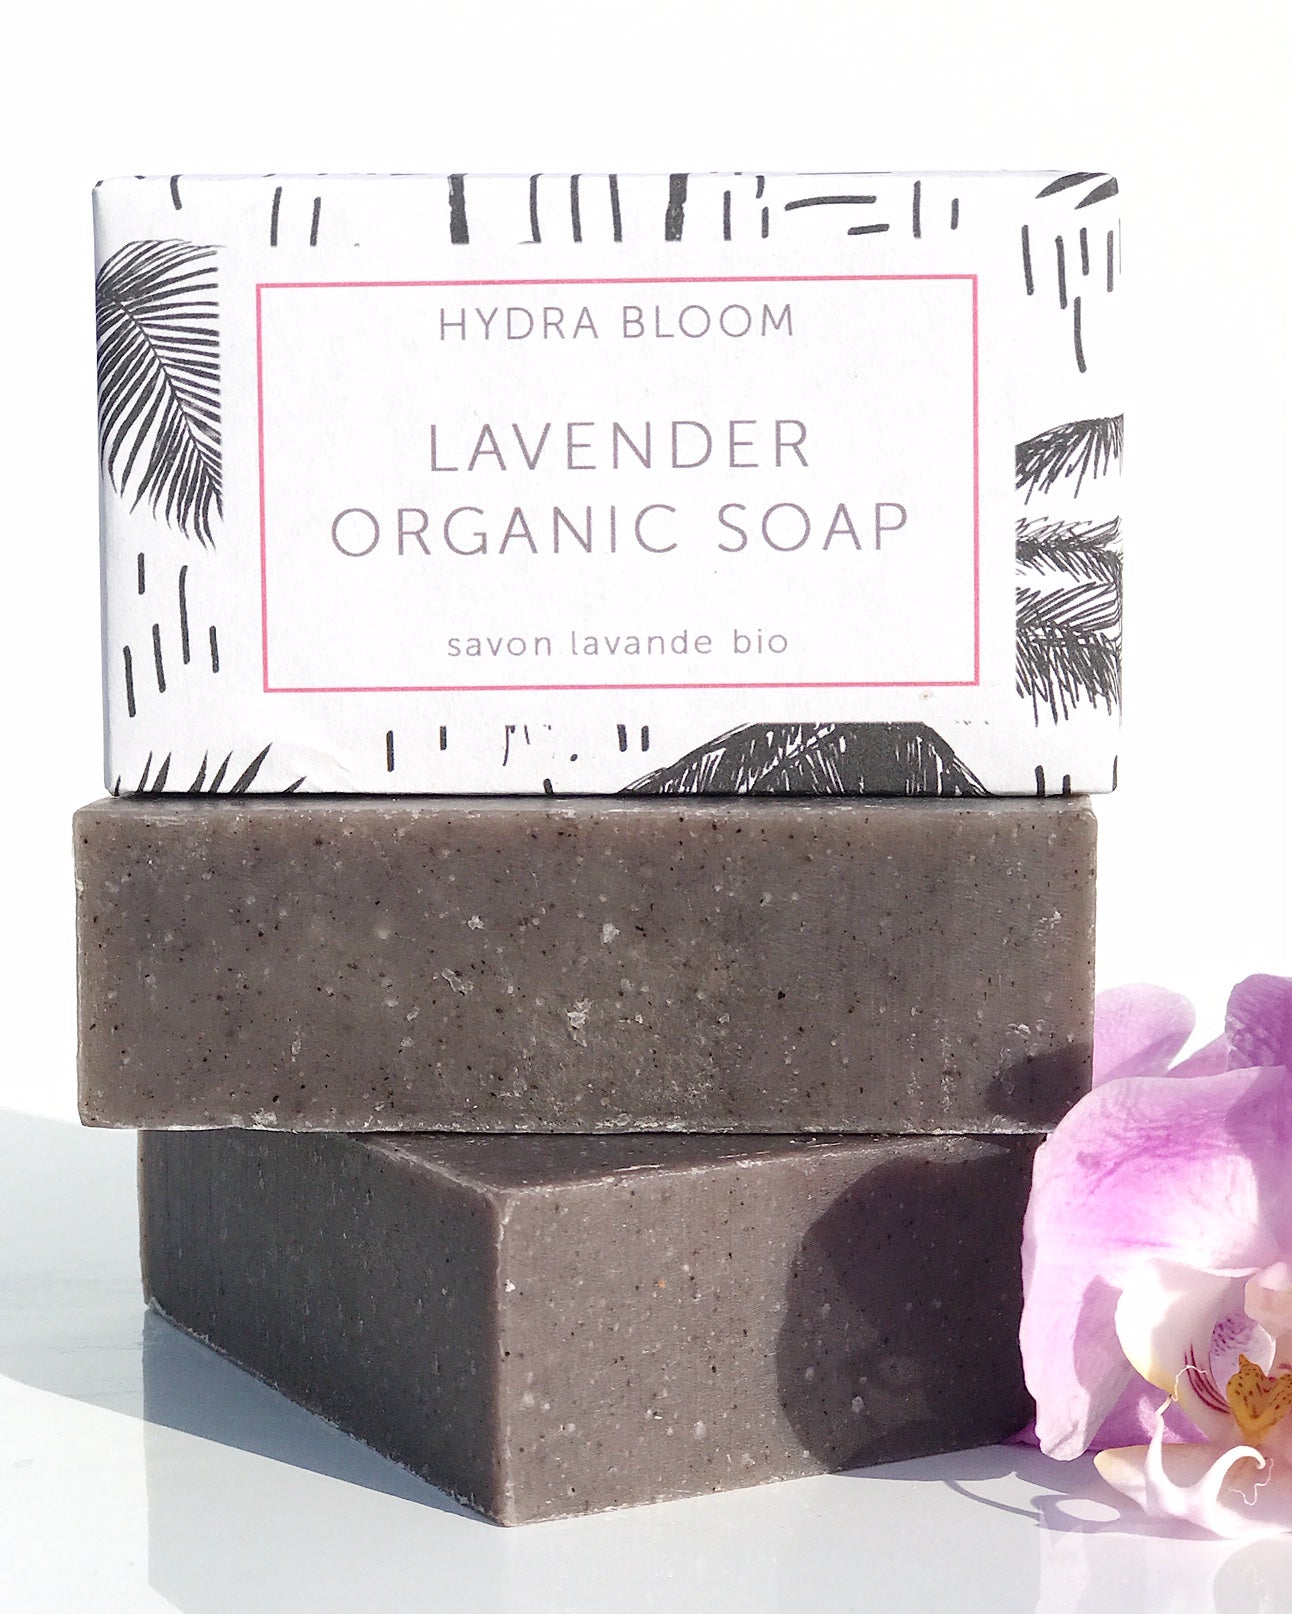 Lavender Relax Organic Soap